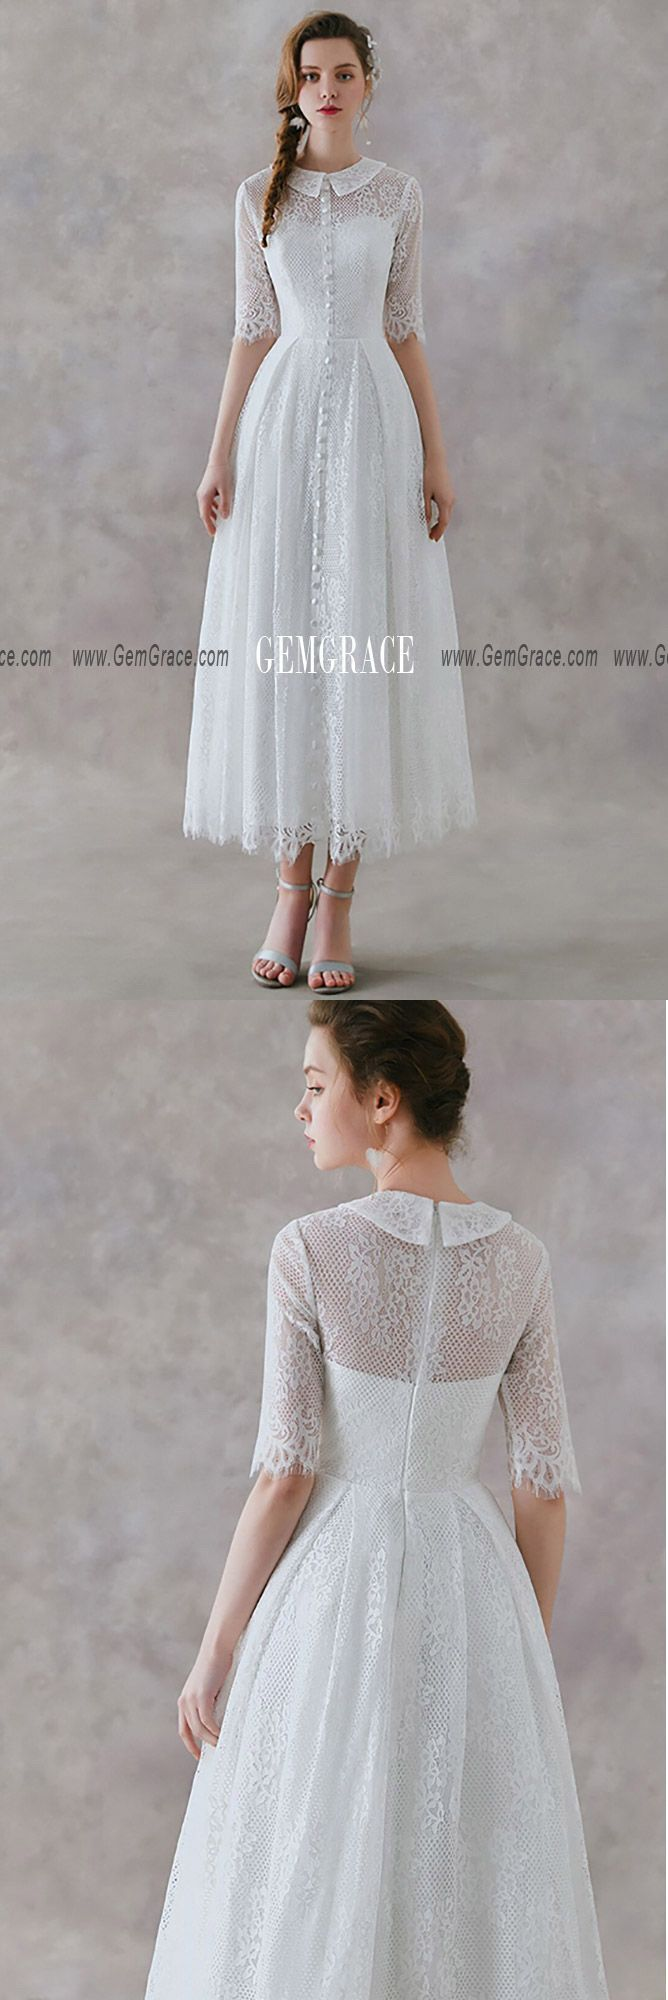 French Vintage Lace Tea Length Wedding Dress With Collar